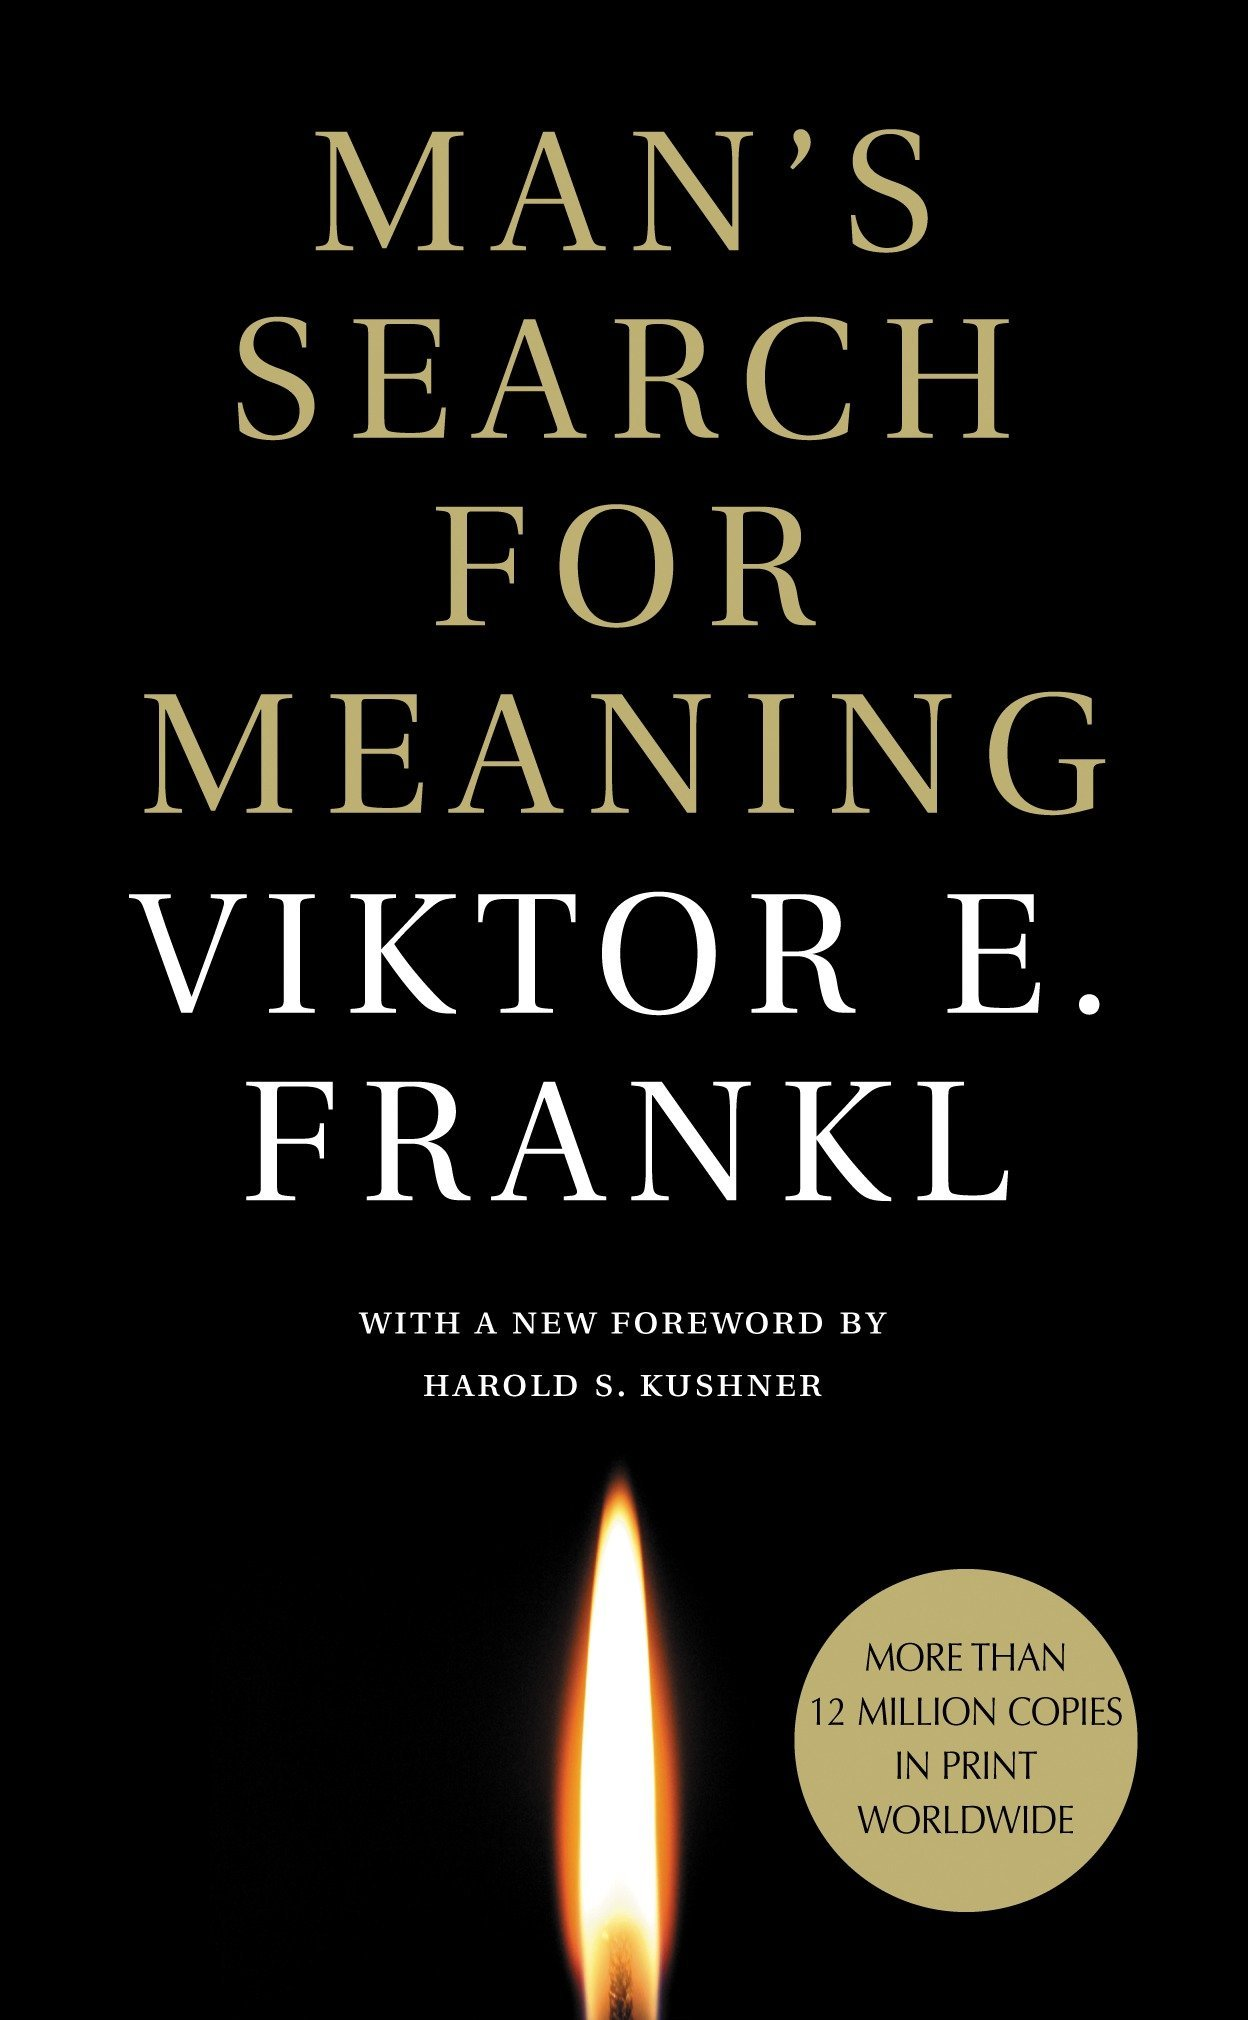 man's search for meaning frankl.jpg